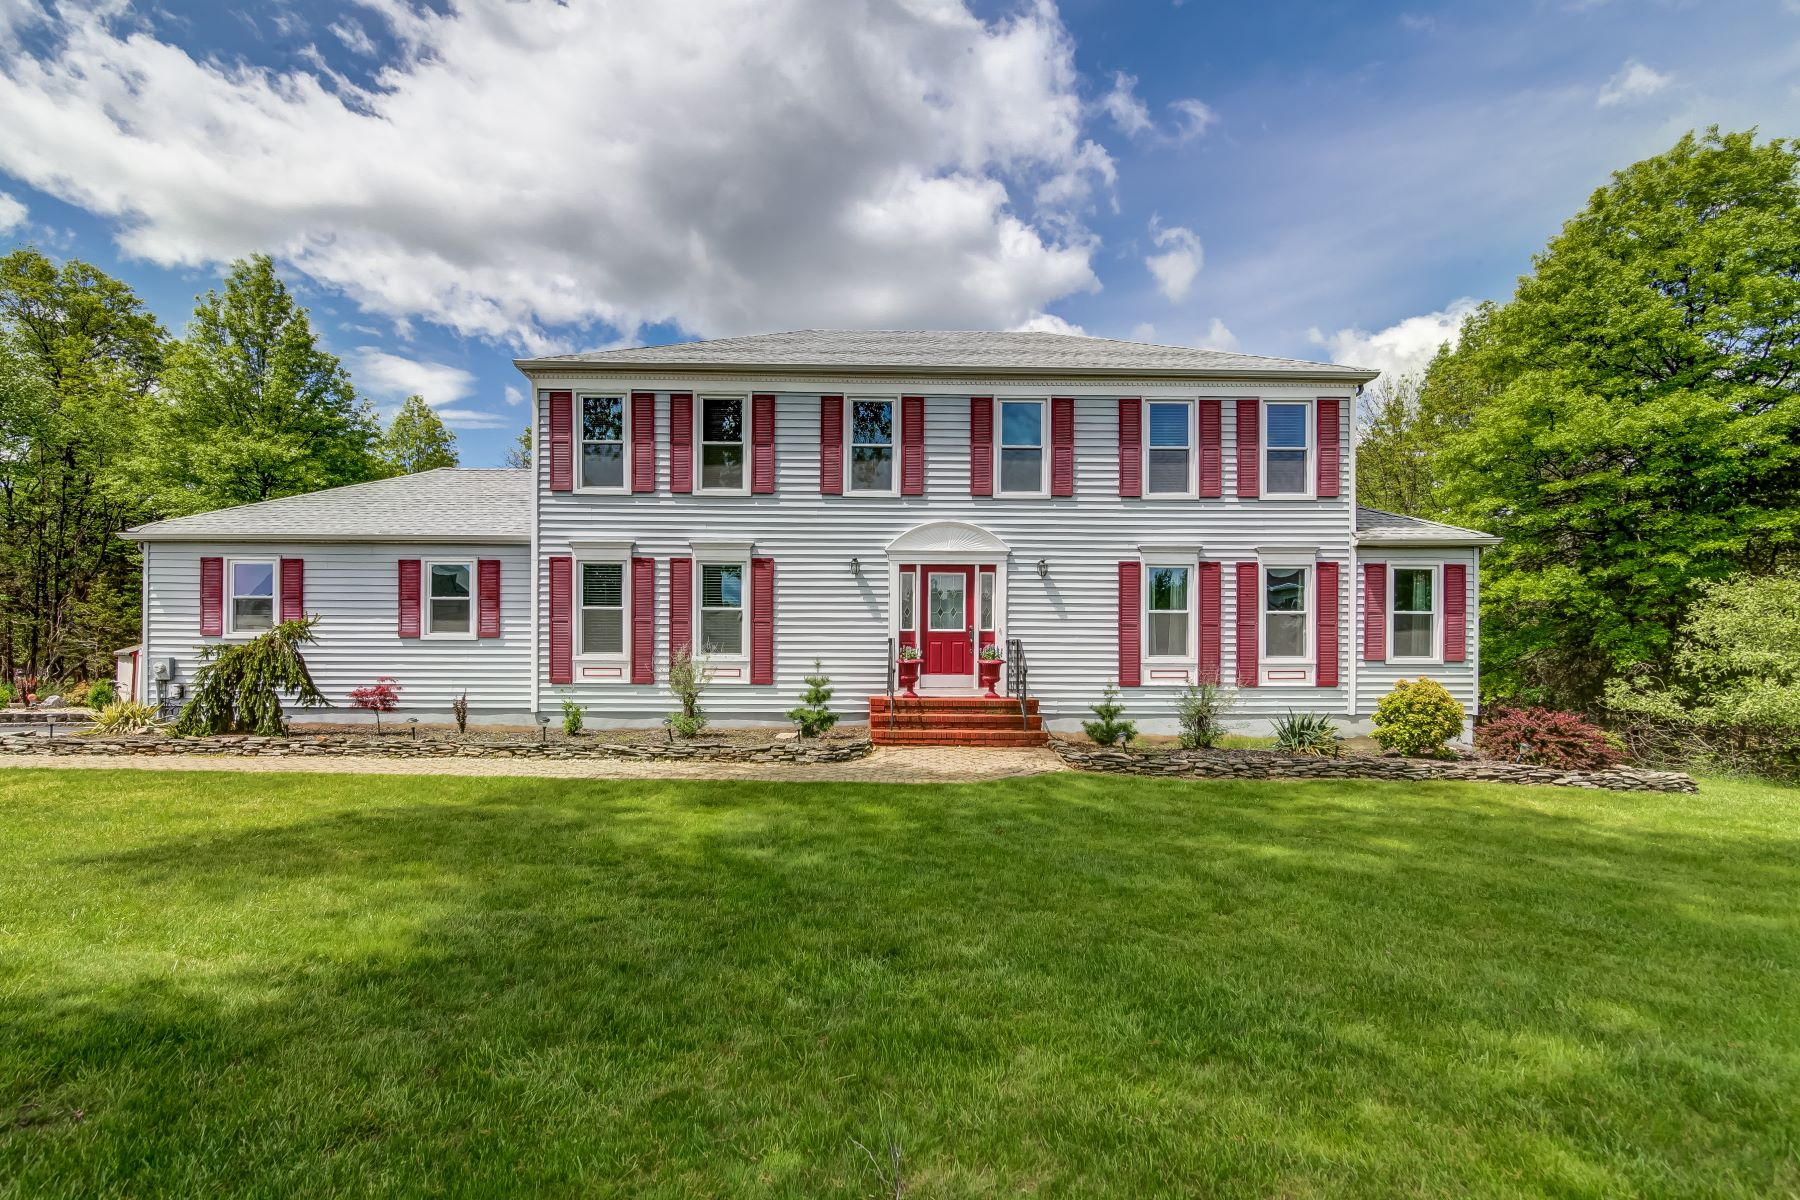 Single Family Home for Sale at Beautiful Colonial 11 Powelson Lane Bridgewater, New Jersey 08807 United States